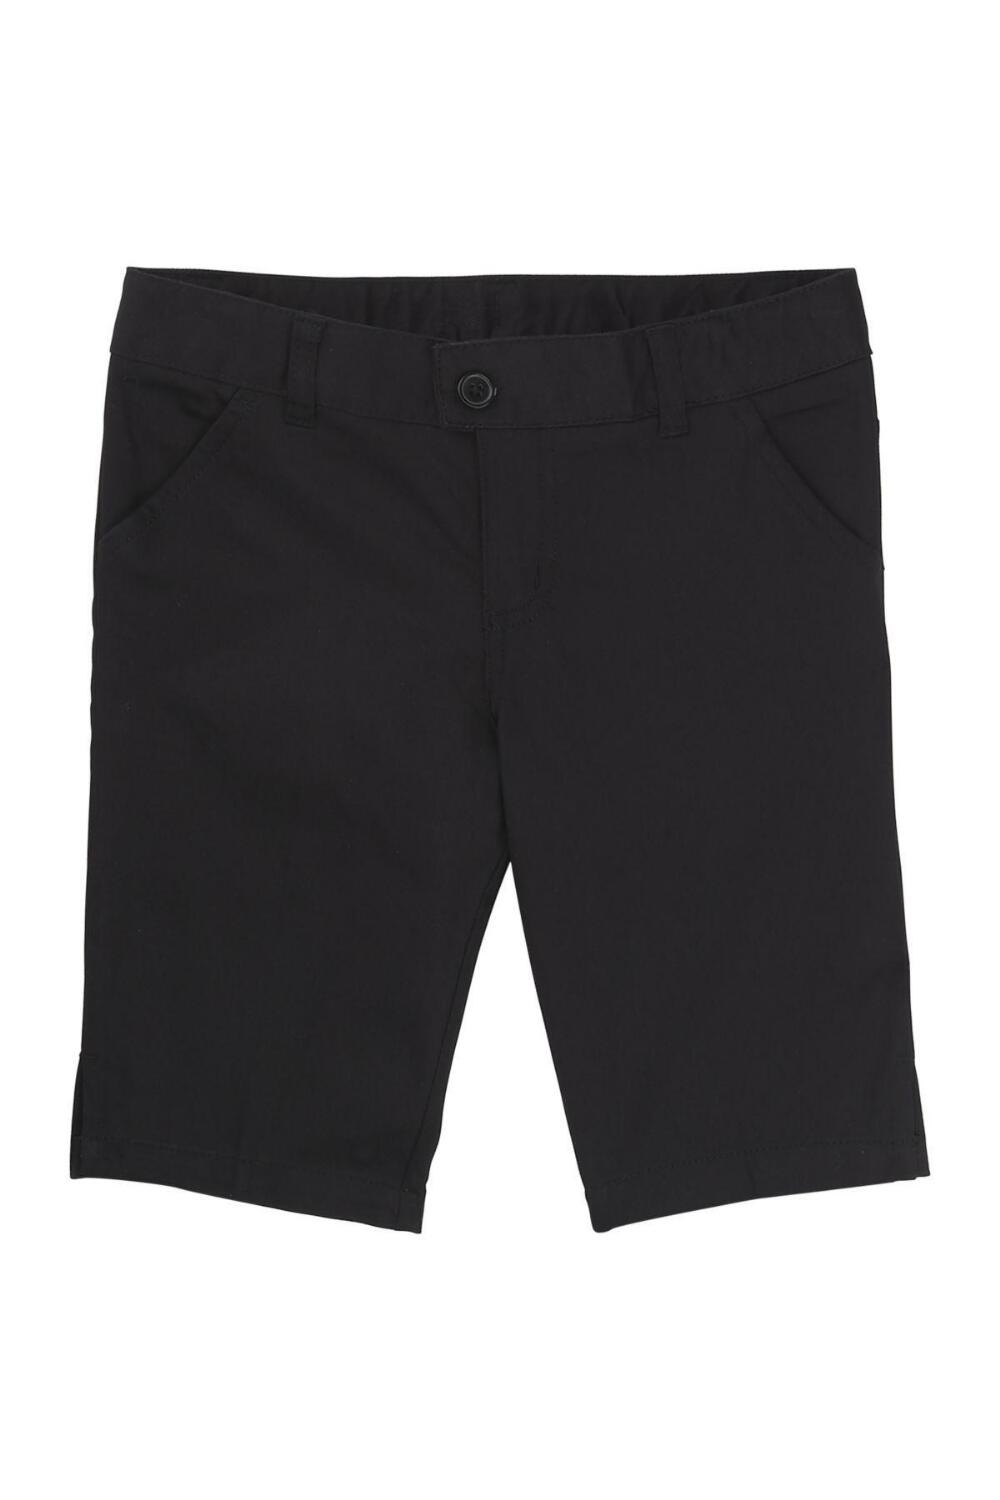 French Toast Girl's Bermuda Short (Color: Black Short, Size: 4)